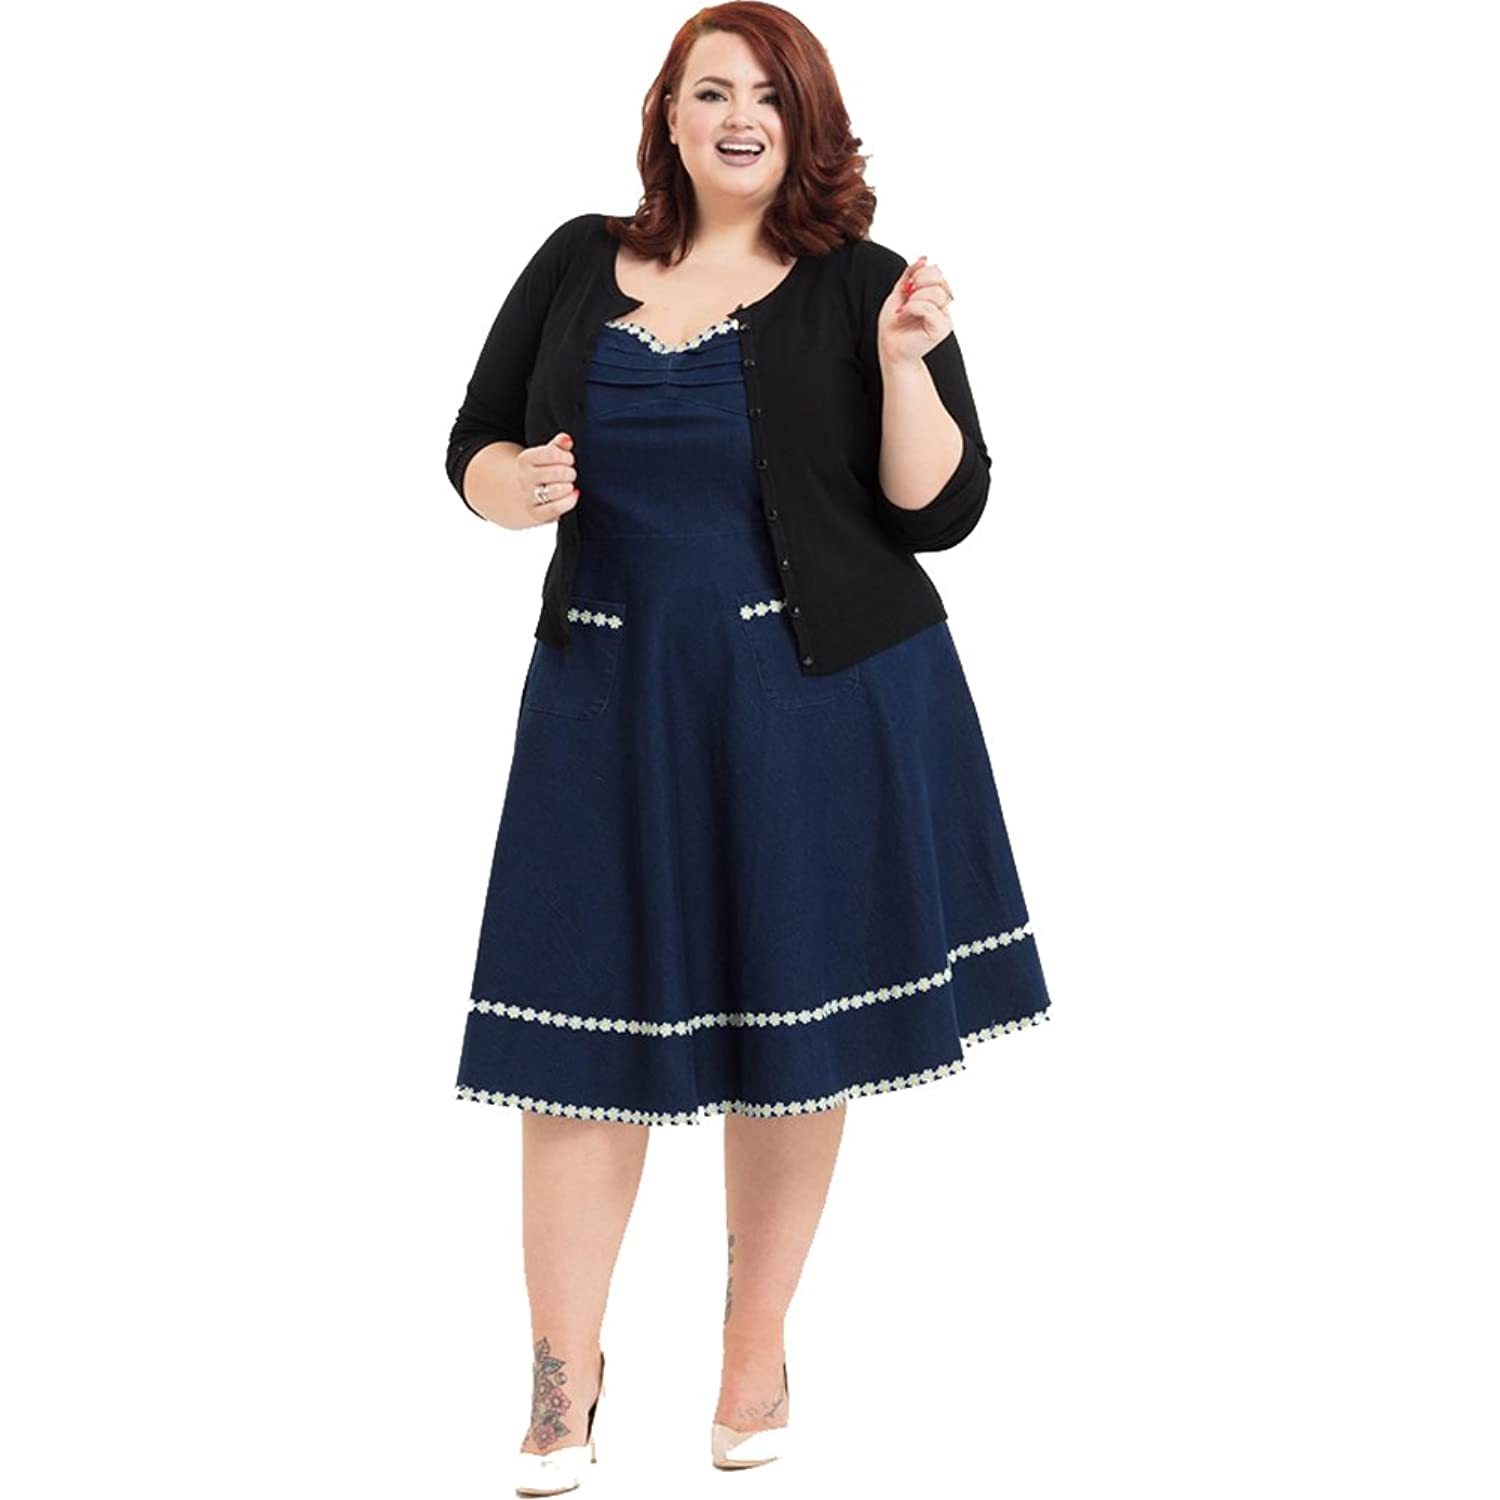 Sailor Dresses, Nautical Dress, Pin Up & WW2 Dresses Voodoo Vixen Daisy May Denim Flaired Dress Plus Size Blue $85.99 AT vintagedancer.com